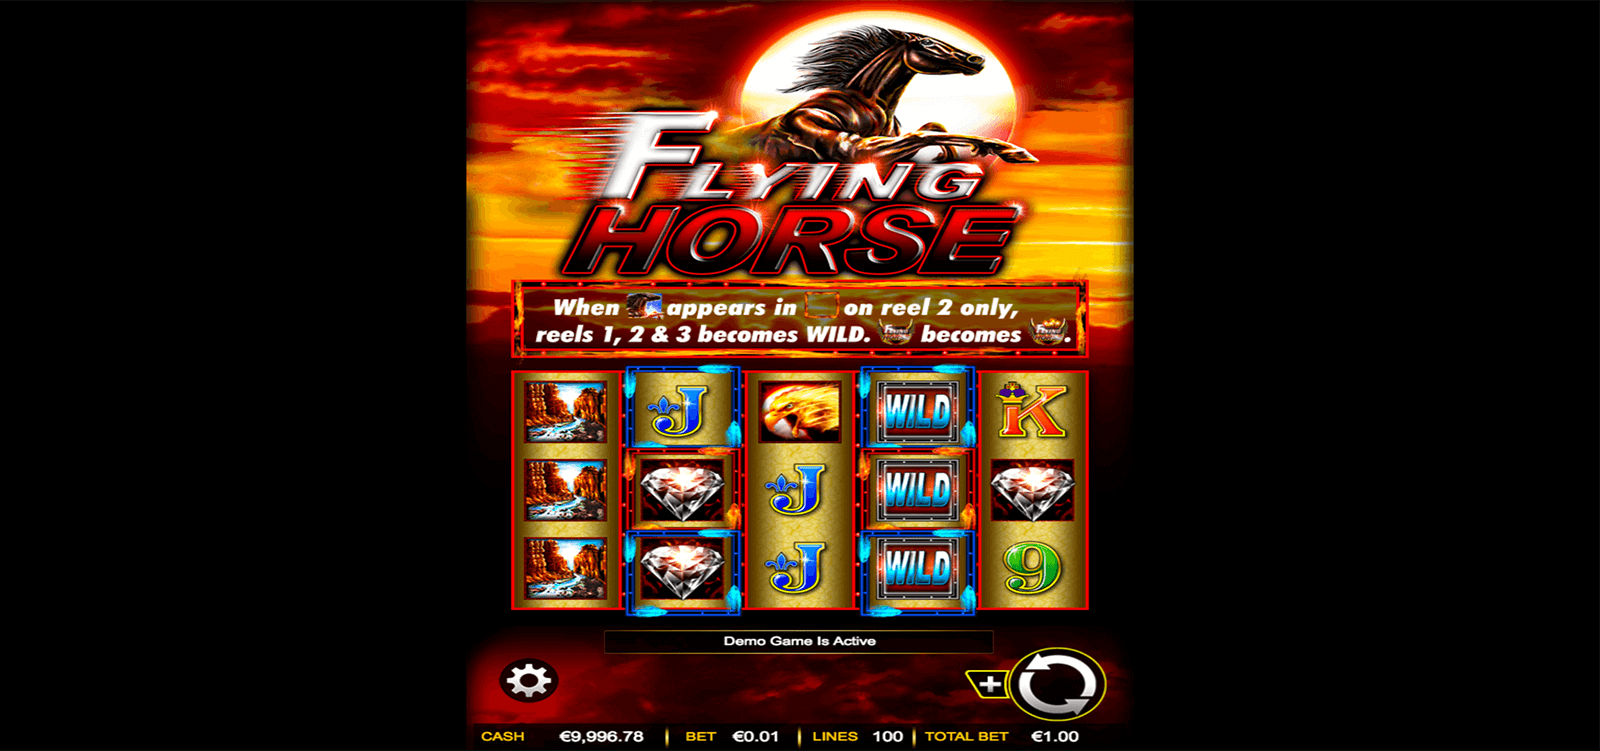 Flying Horse Slots - Free Online Ainsworth Slot Machine Game